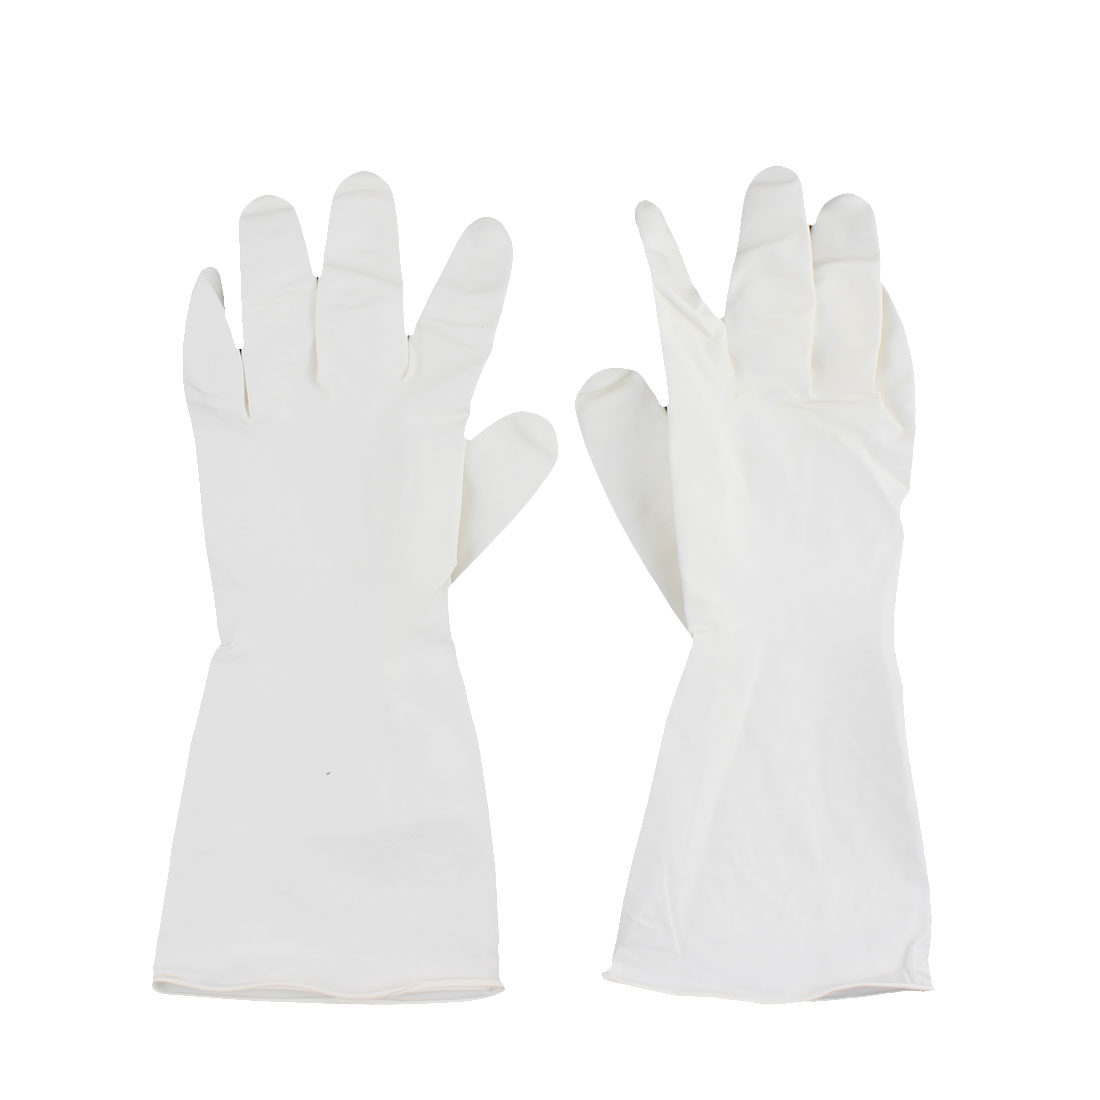 Kitchen Wash Dishes Rubber Gloves Sleeves Cleaning Tool Pair